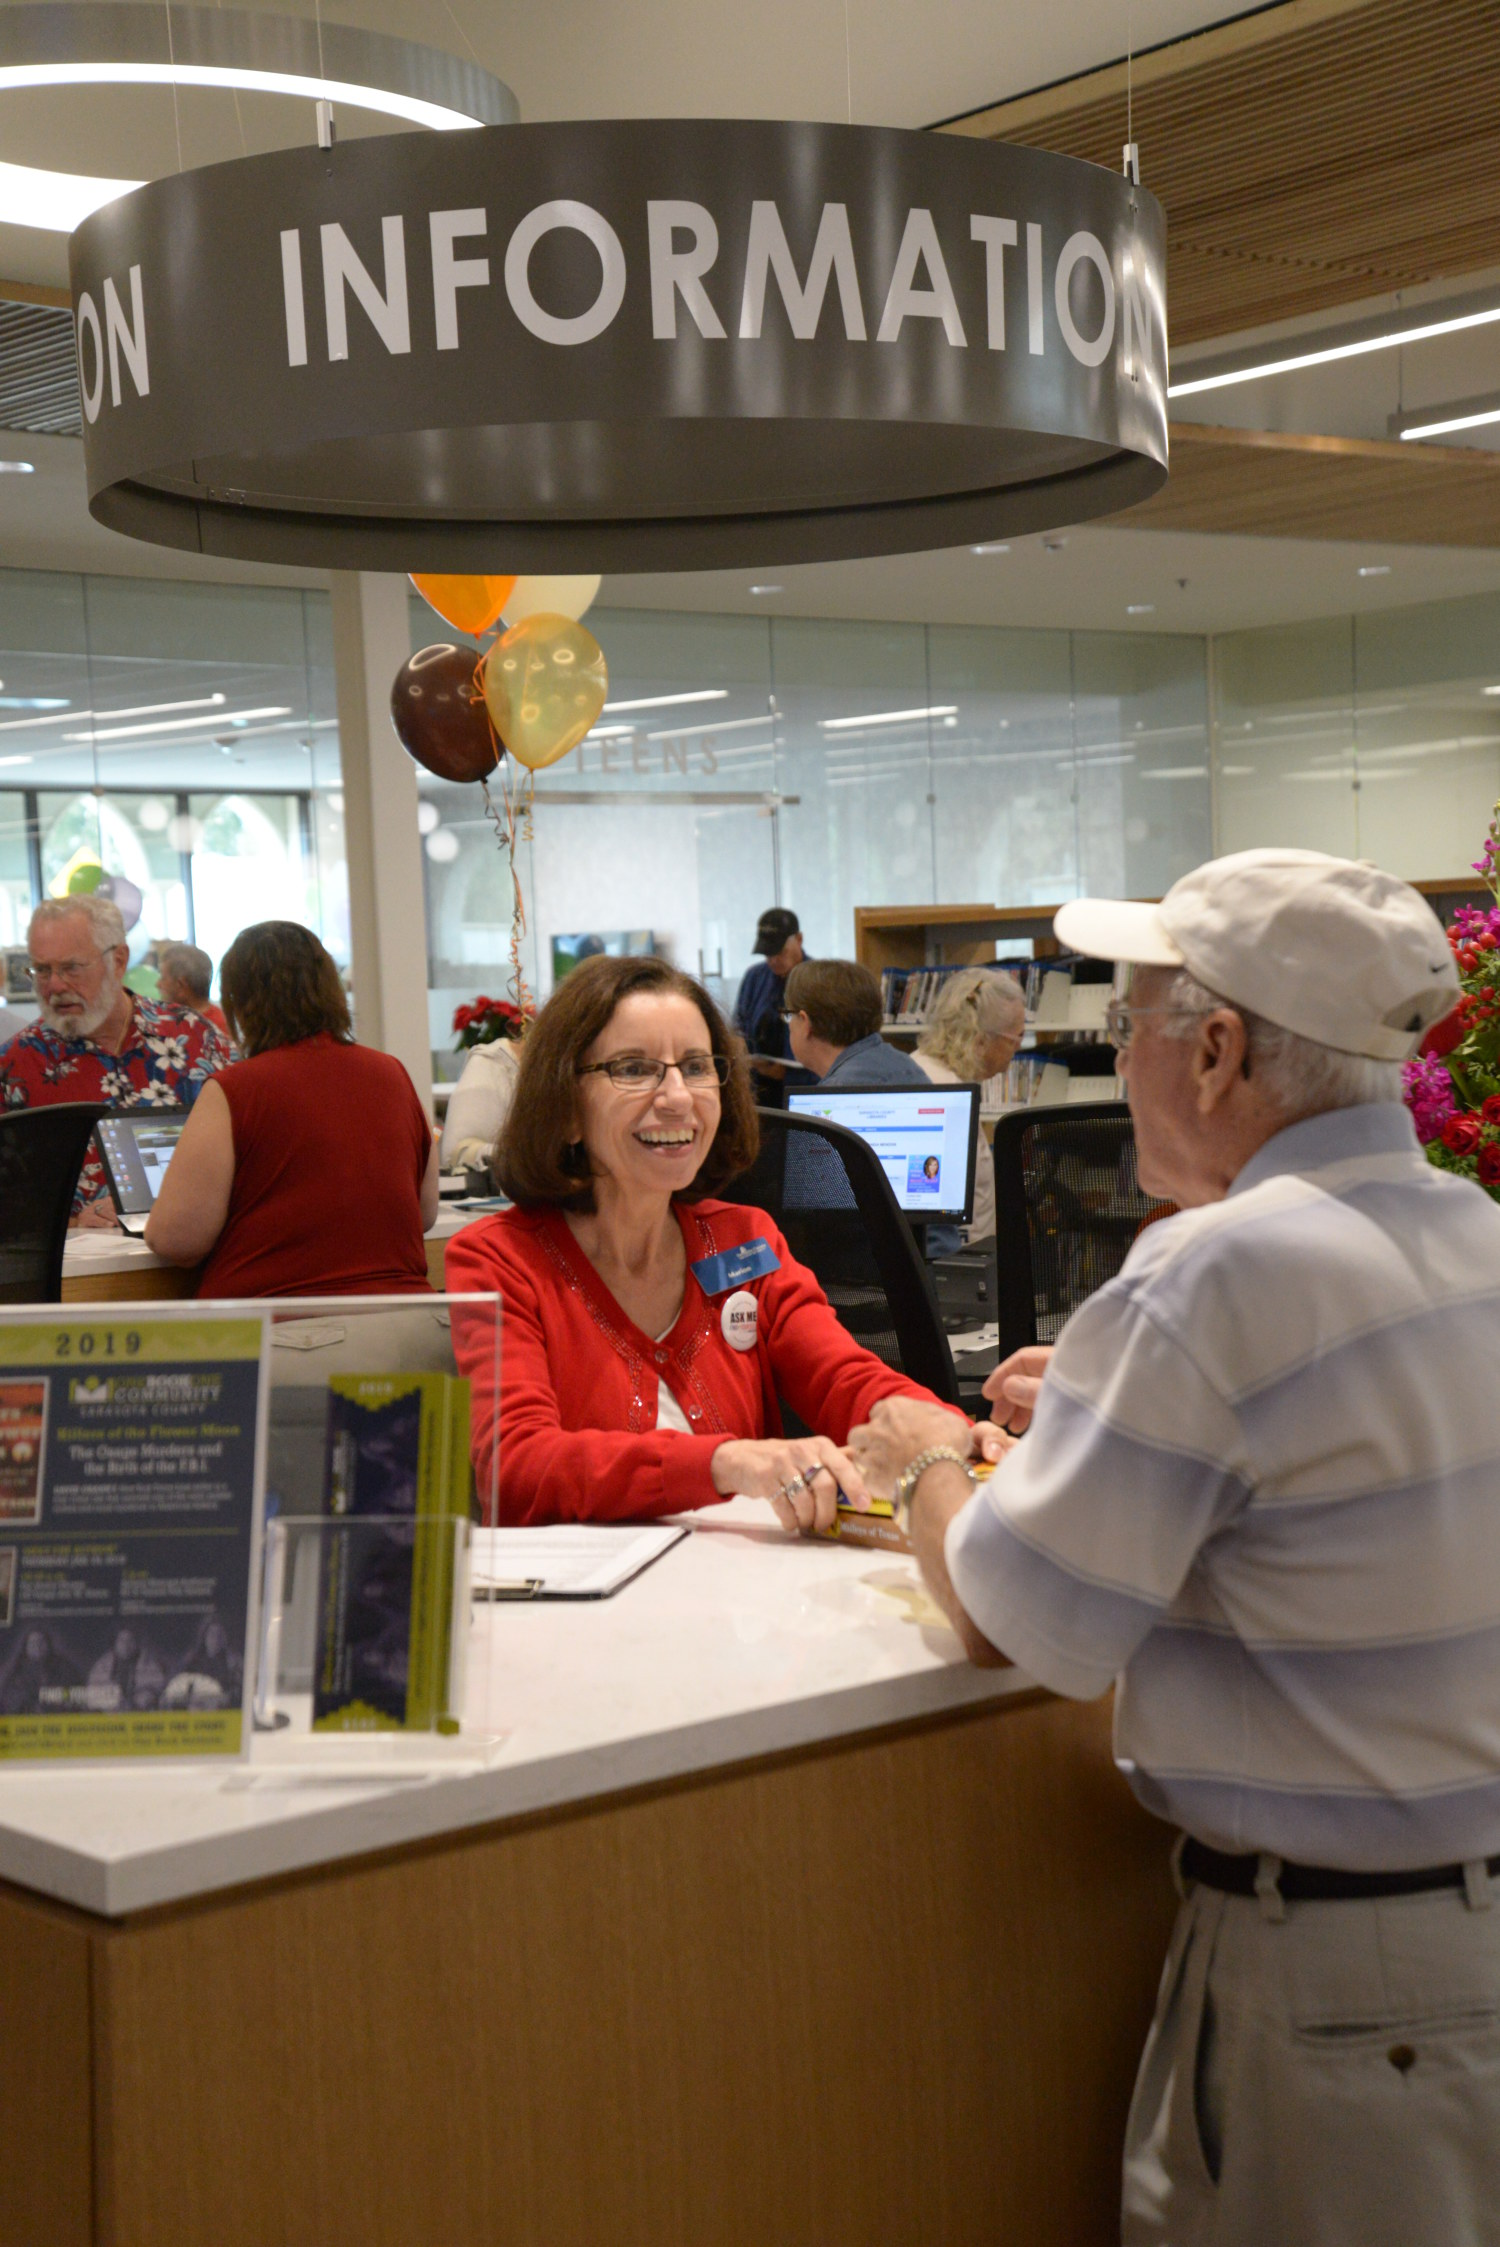 Immediately following the ribbon-cutting ceremony Dec. 15, 2018, library patrons checked out materials from the new William H. Jervey Jr. Venice Public library.